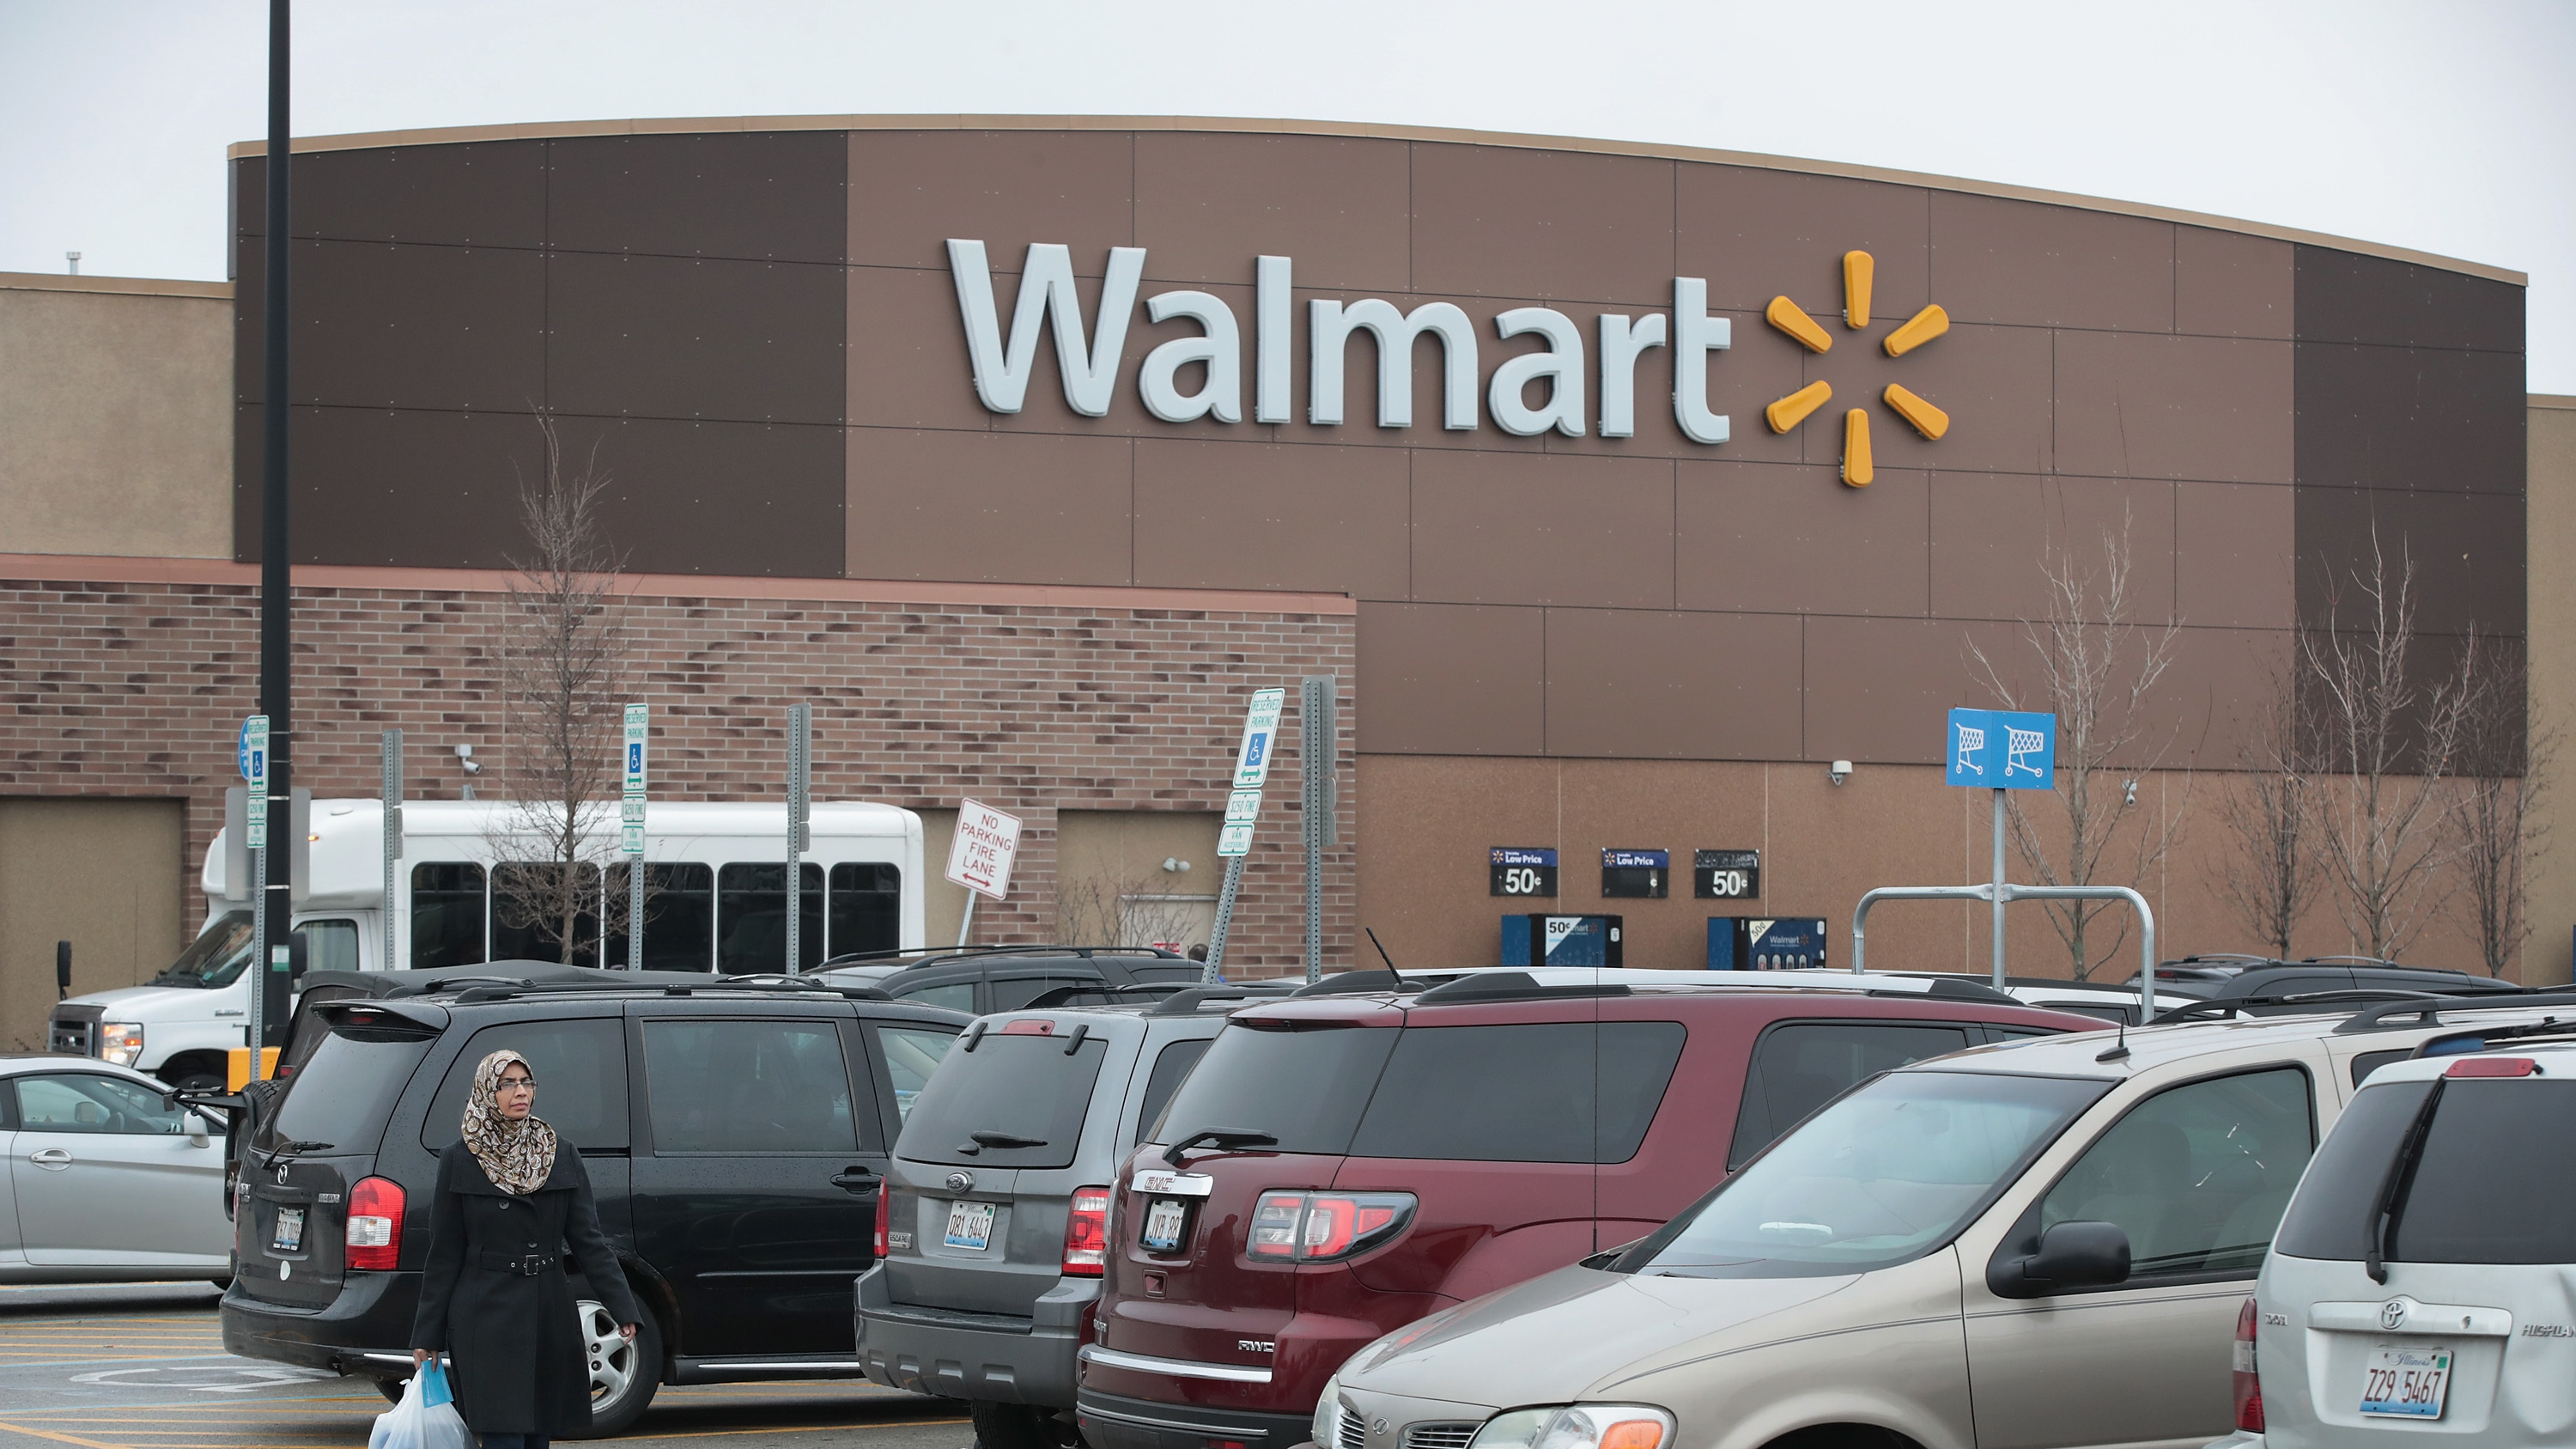 Walmart Announces Higher Starting Wages, Bonuses, and Benefits Thanks to Tax Reform